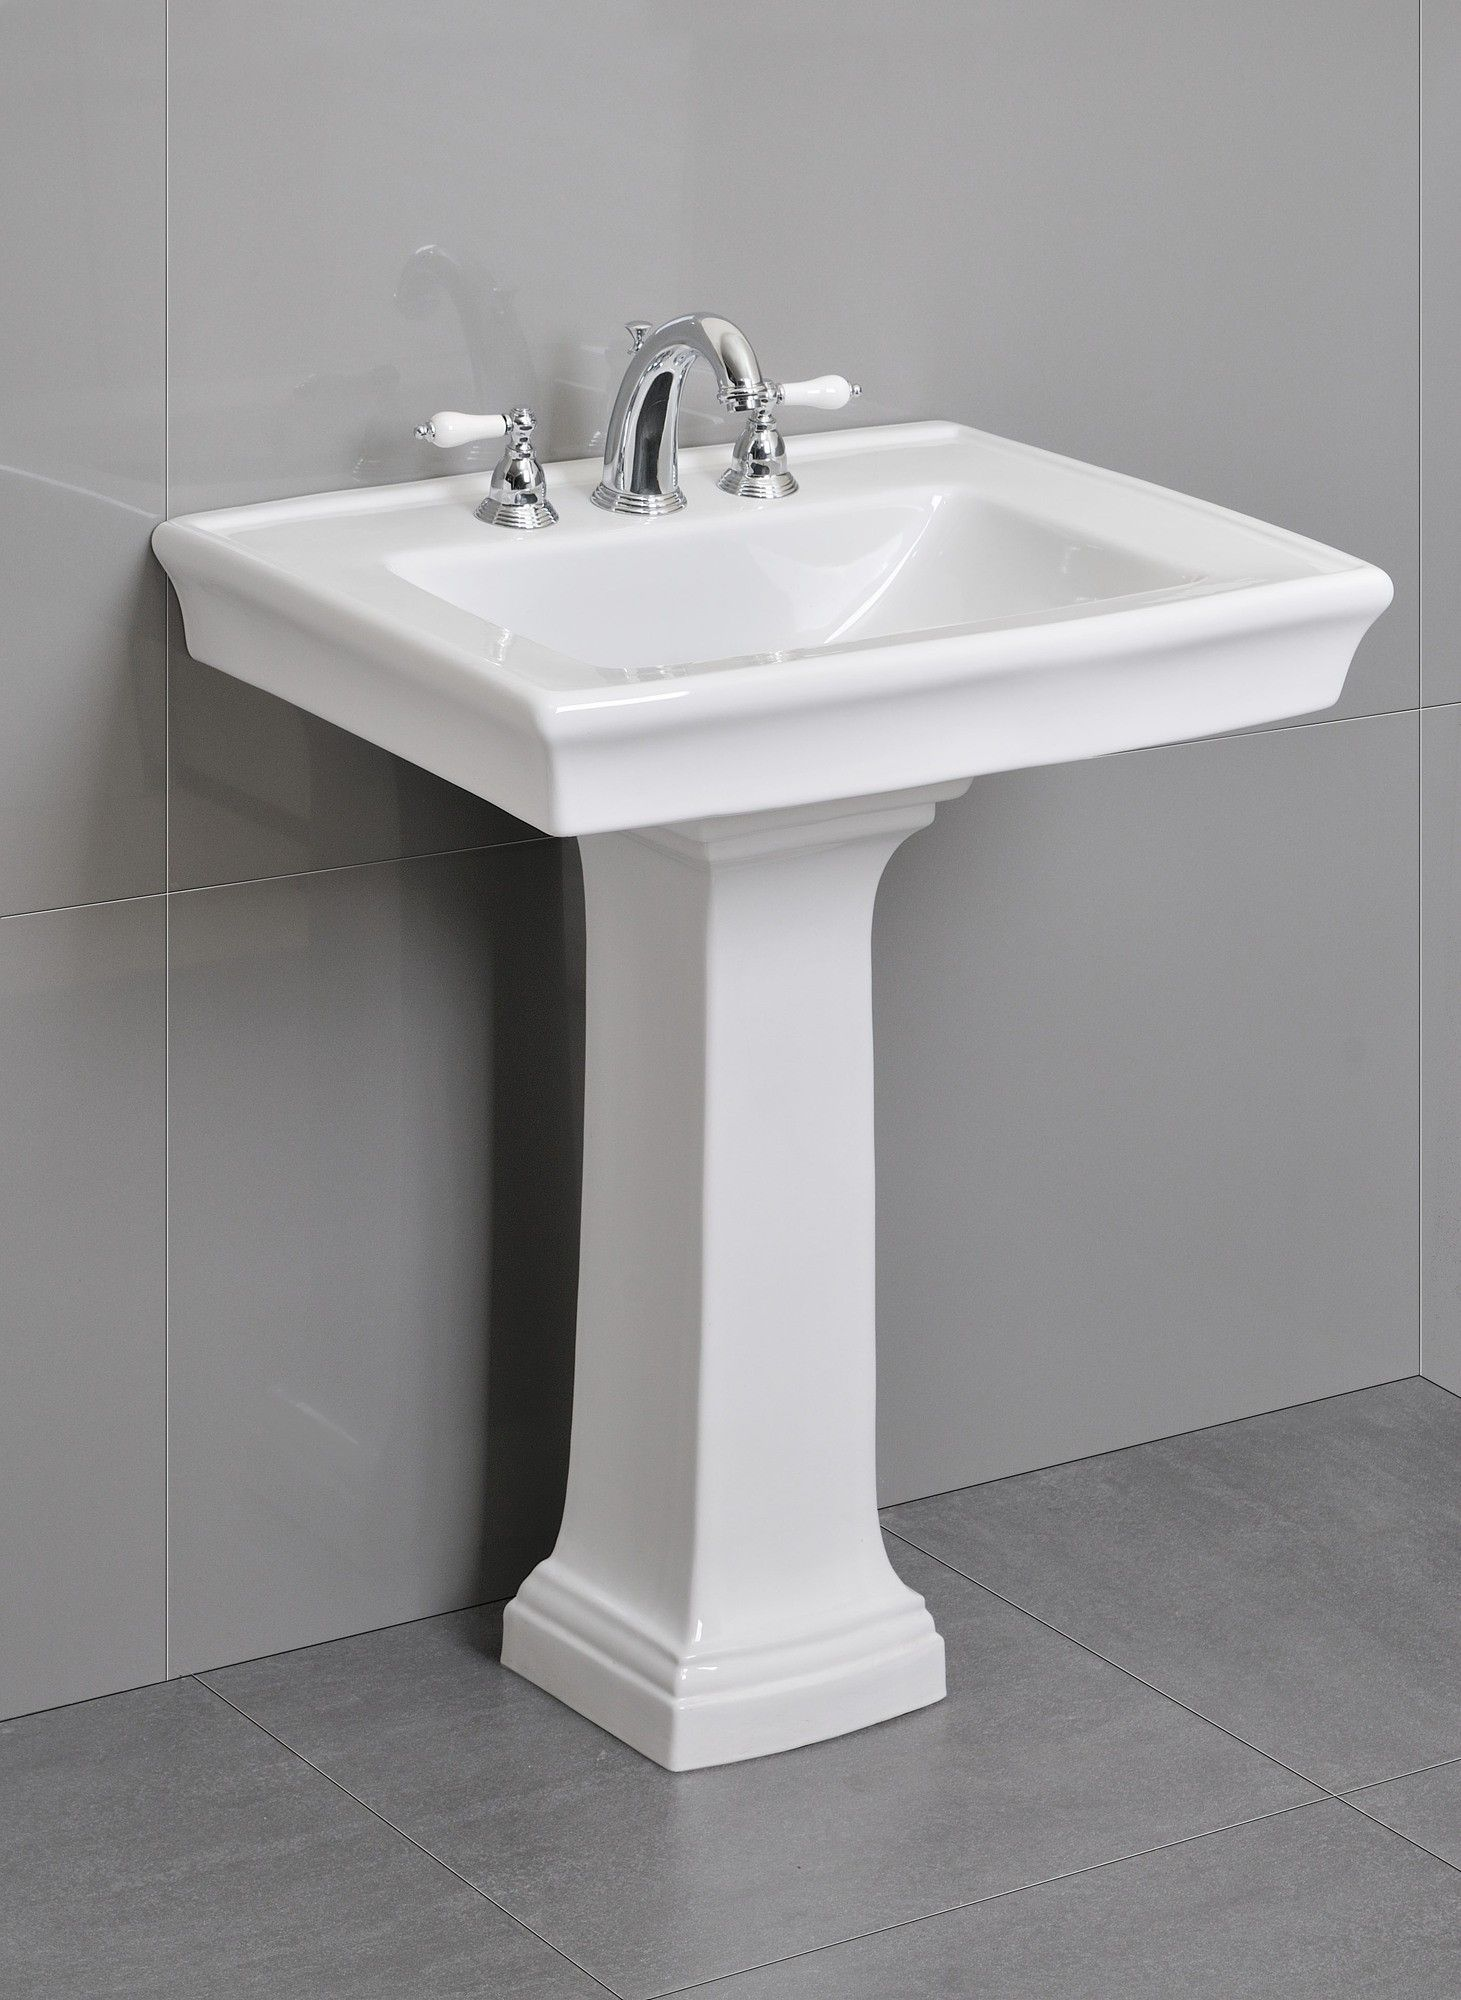 pedestal sink bathroom ideas icera julian pedestal sink lp 2320 100 bathroom ideas 21232